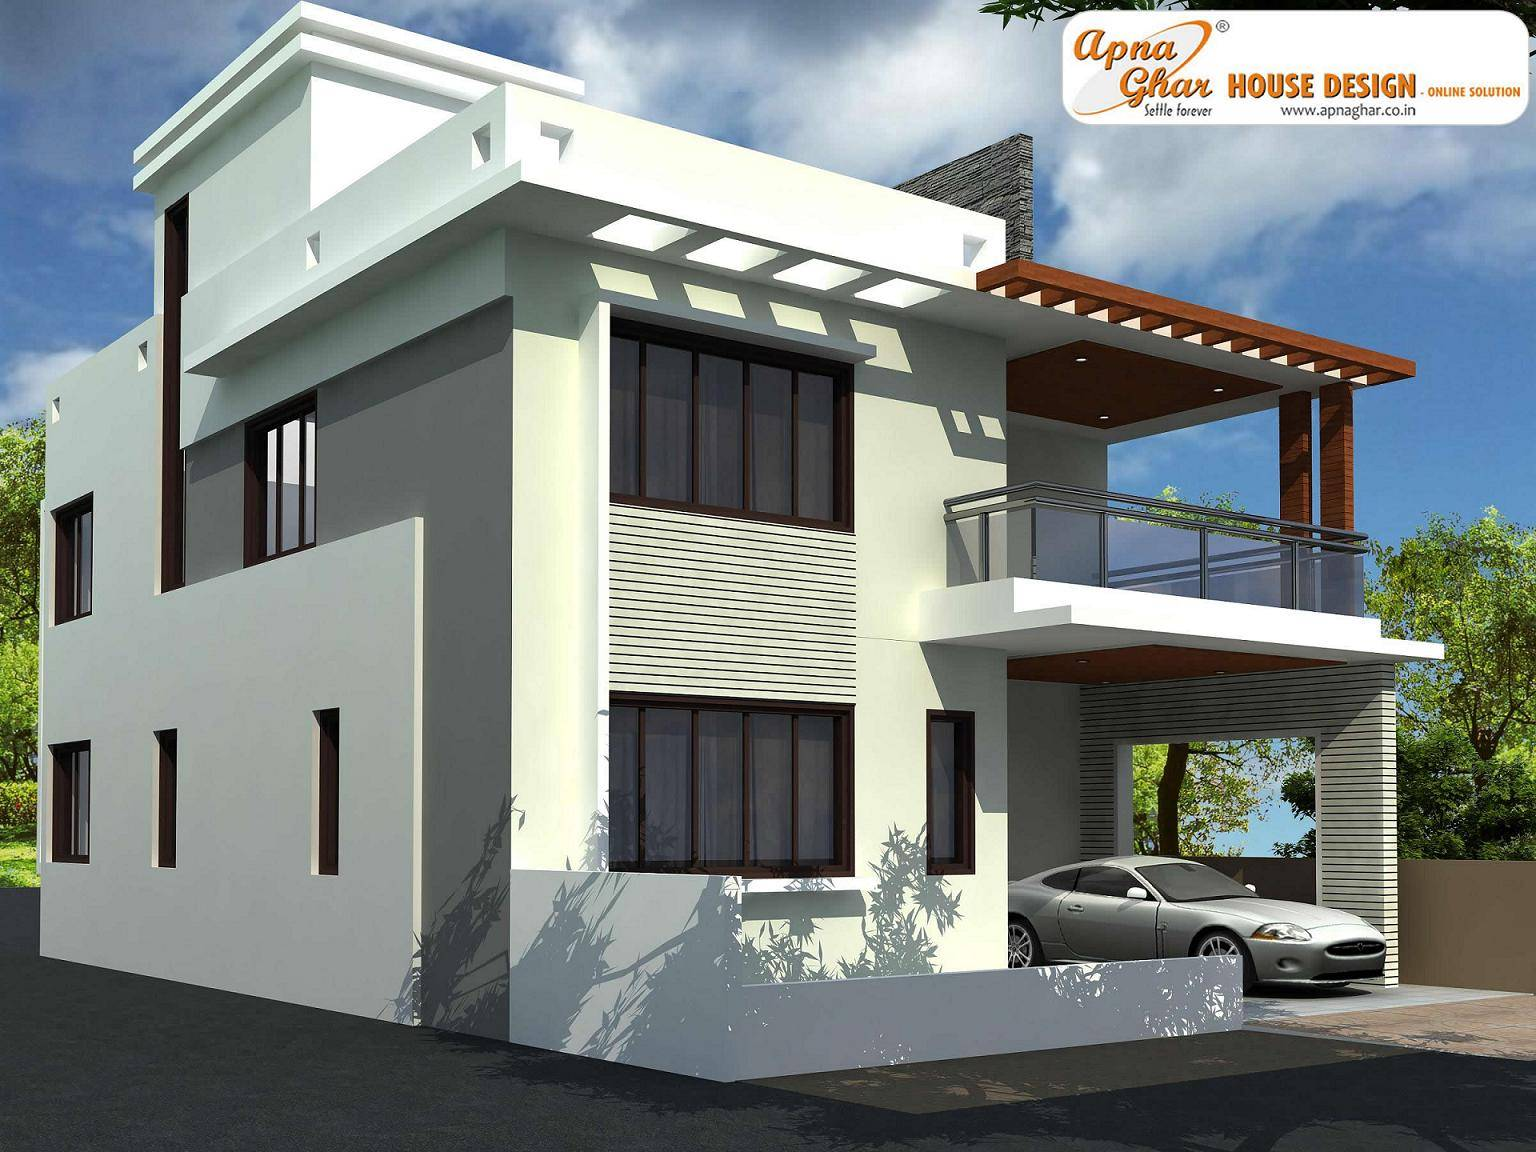 house plans x site north facingplanshome plans ideas picture duplex house plans in 30 x - Home Design Site